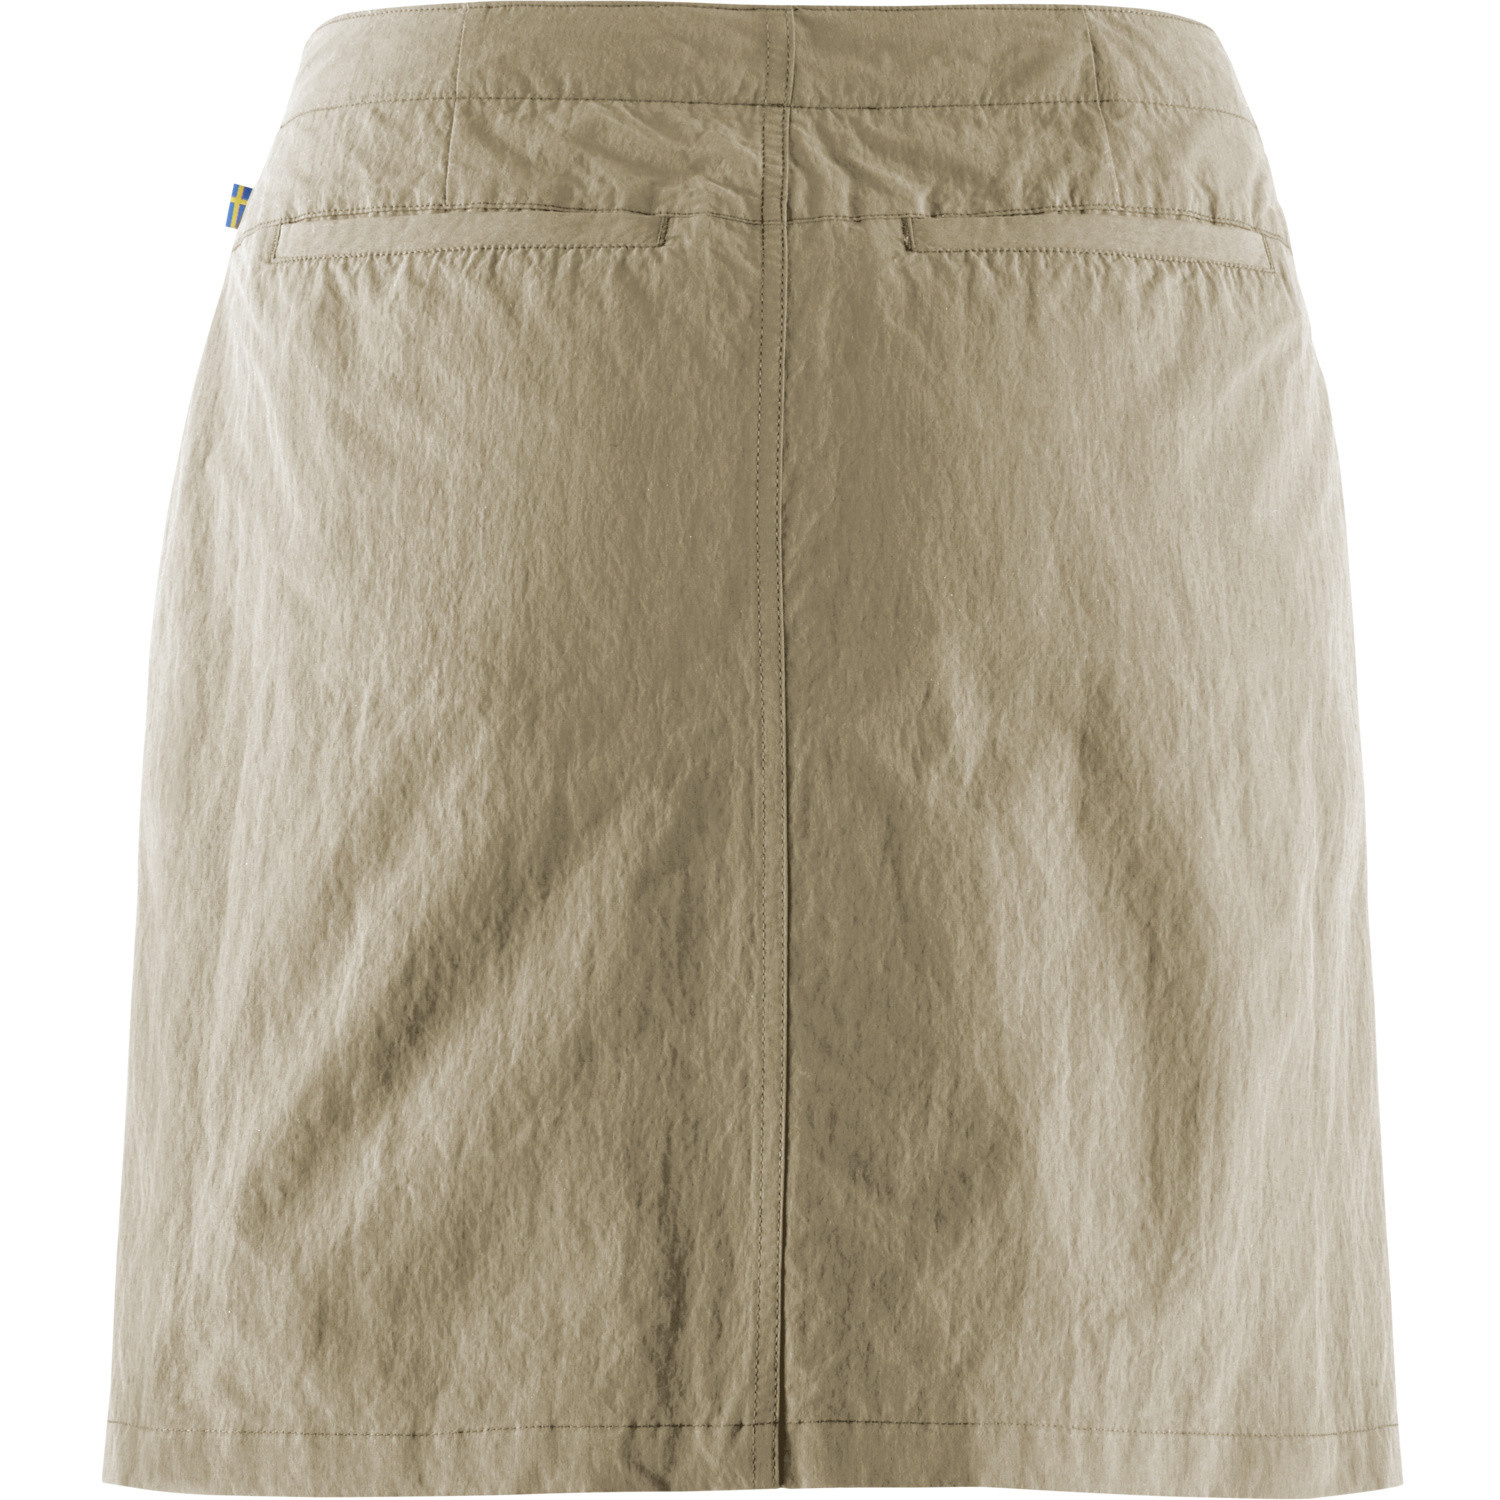 Fjällräven Travellers MT Skort W Light Beige-2